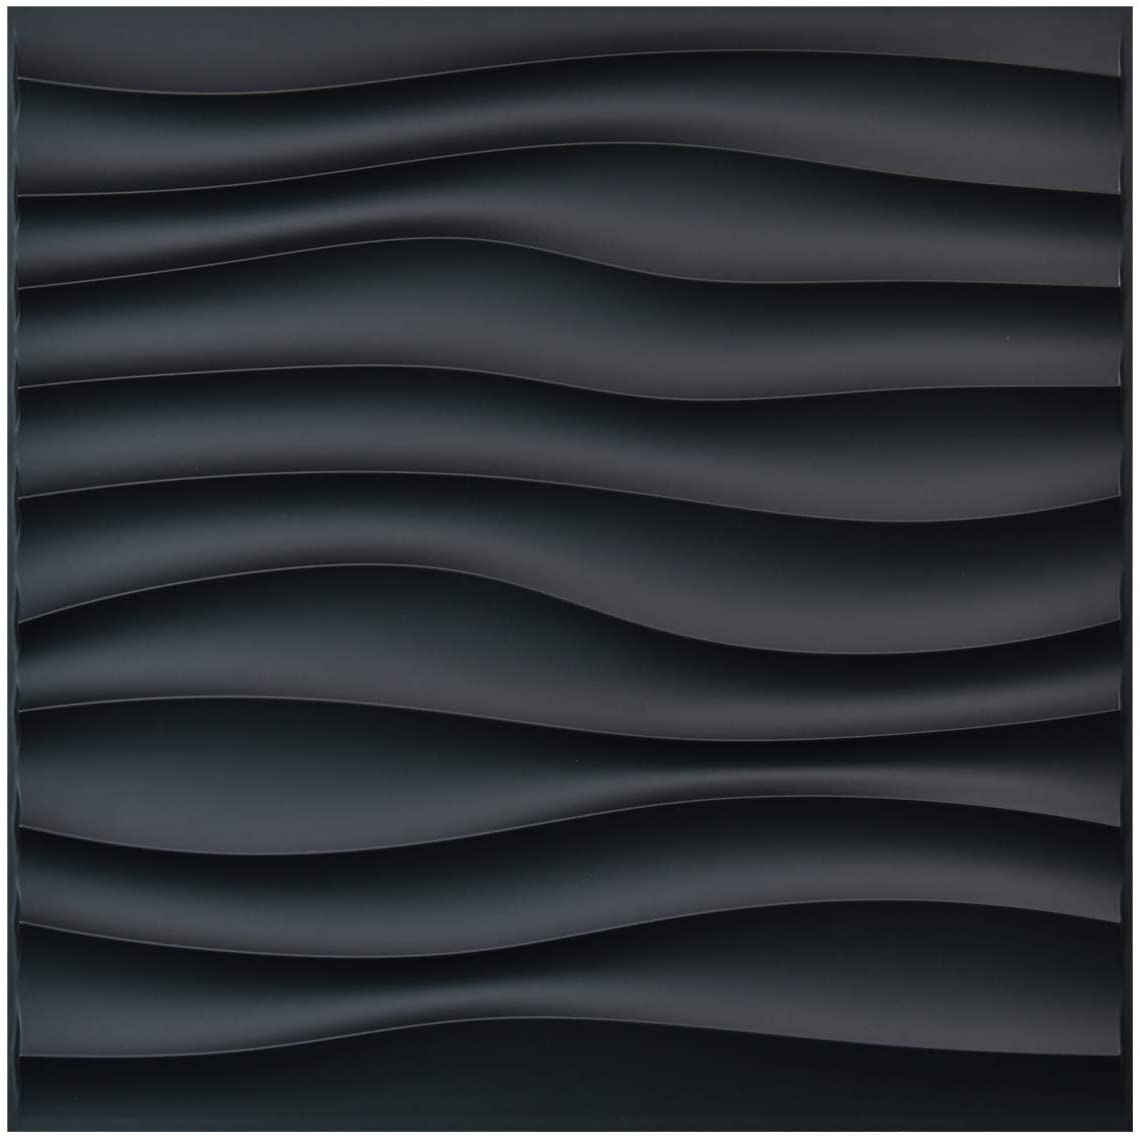 Amazon Com Art3d Pvc Wave Panels For Interior Wall Decor Black Textured 3d Wall Tiles 19 7 X 19 7 12 Pack Home Improvement